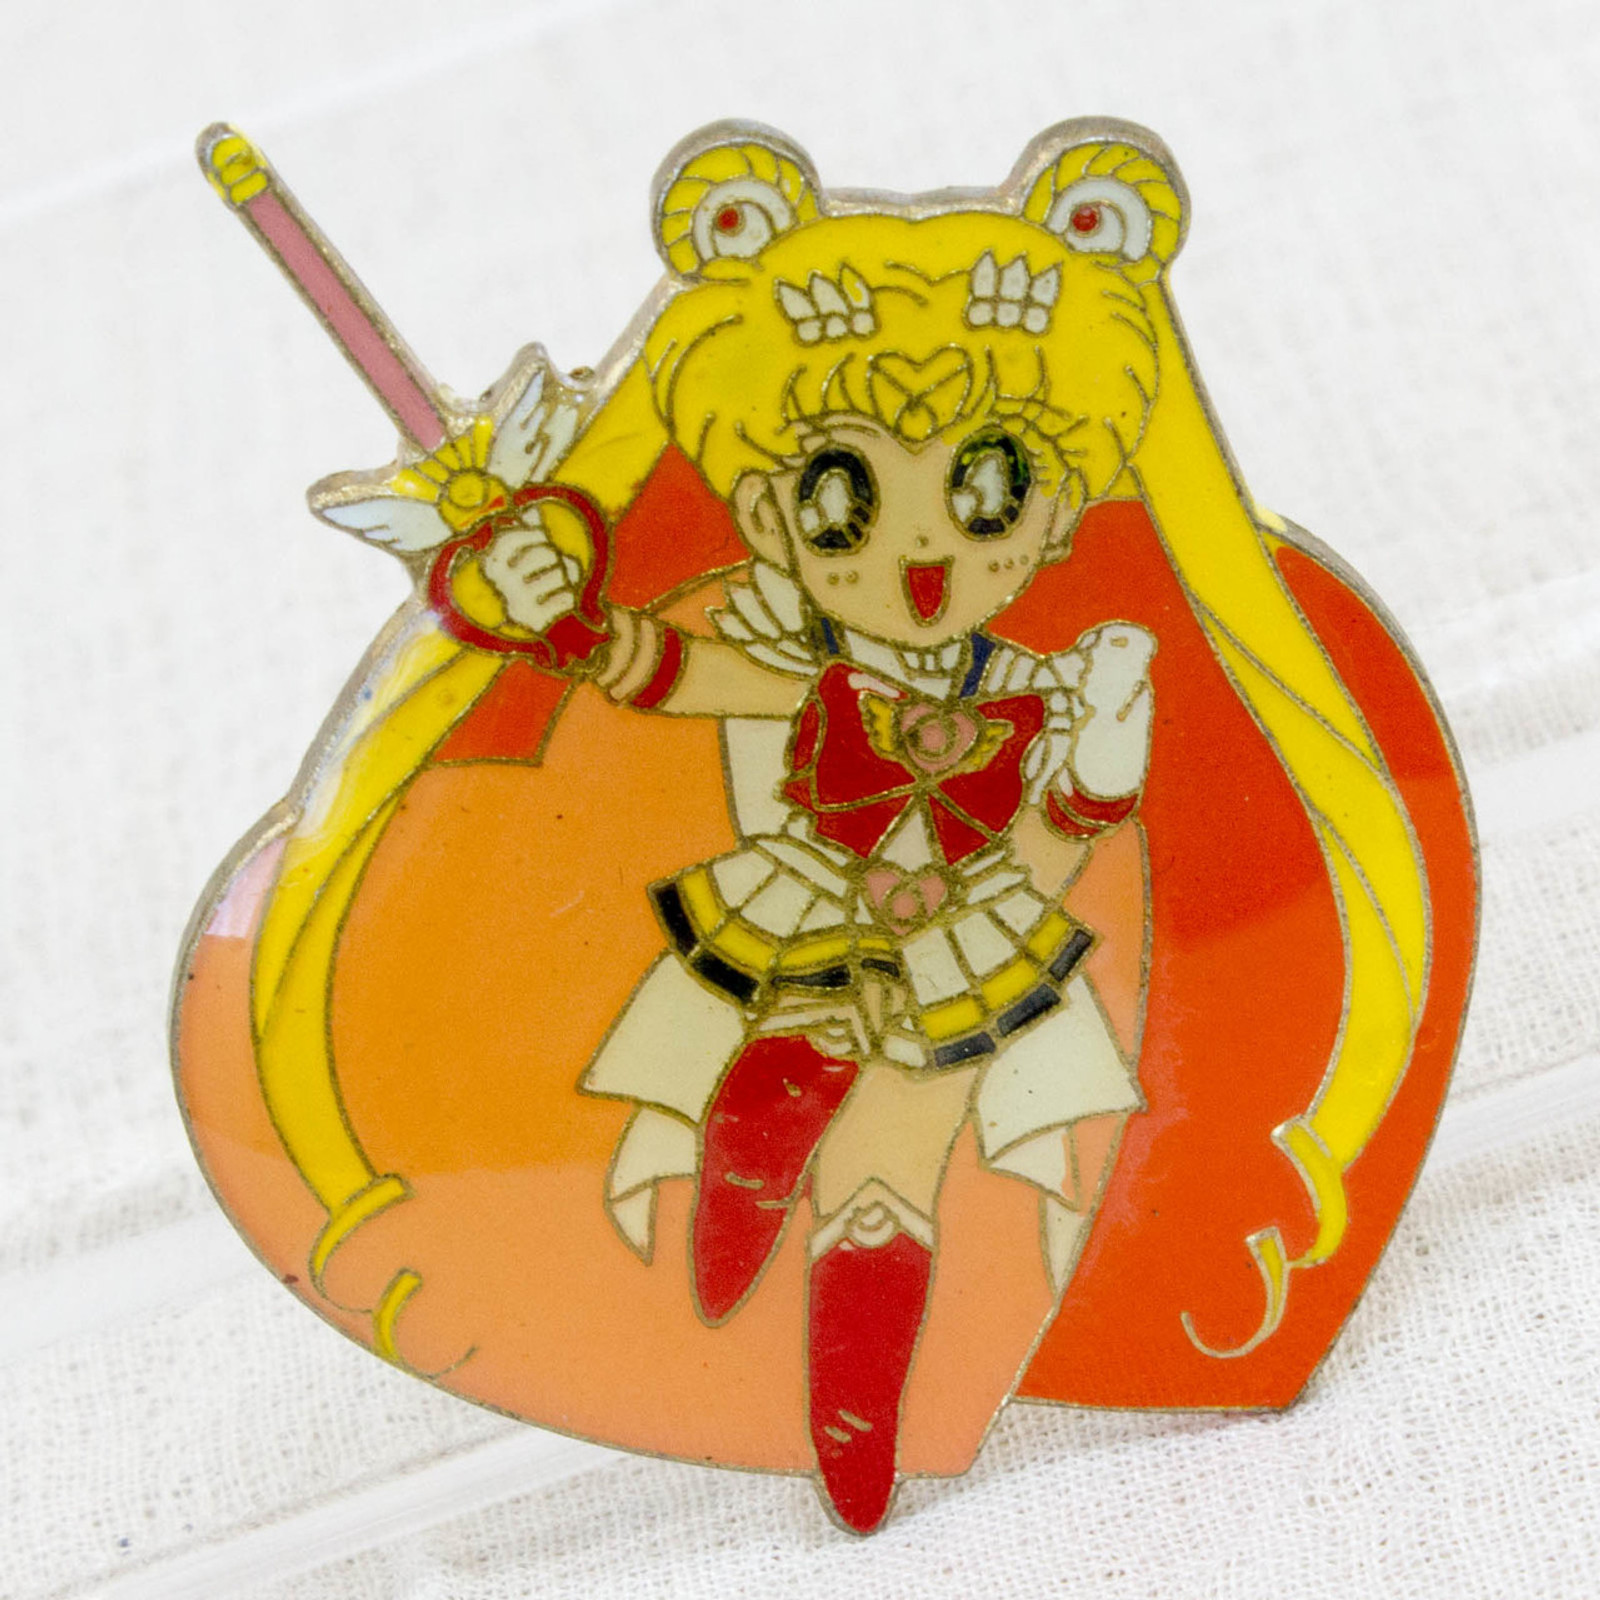 Sailor Moon Sailor Moon (Usagi Tsukino) Metal Pins Badge JAPAN ANIME MANGA 4